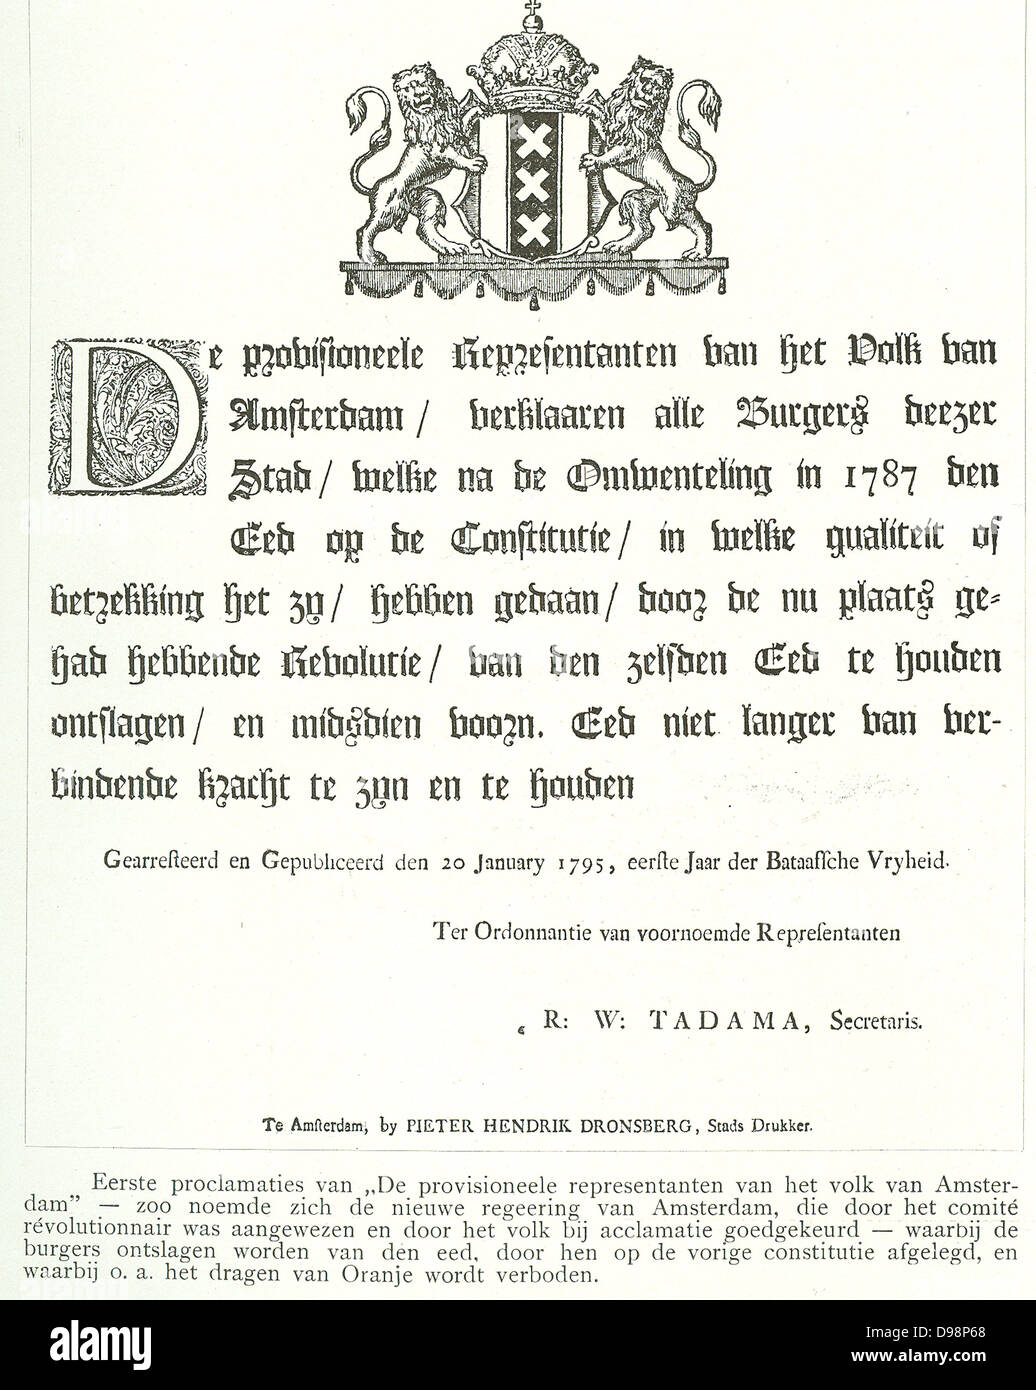 Proclamations of the provisional representation of the people of Amsterdam during the revolutions in Holland 1795 - Stock Image